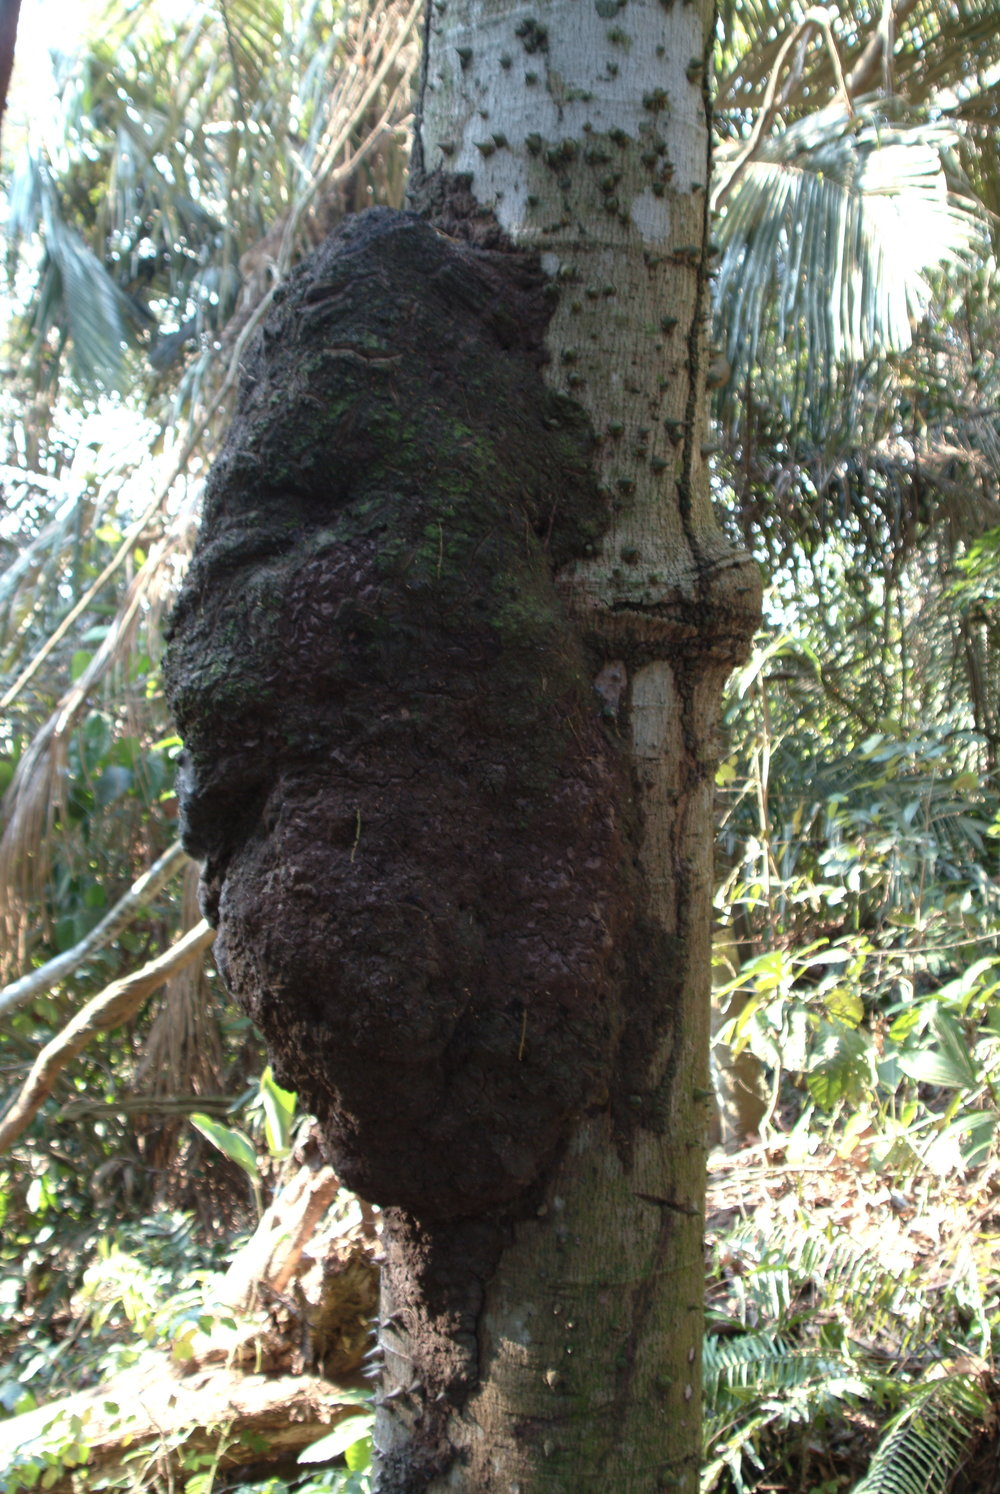 Ant or Termite nest Amazon